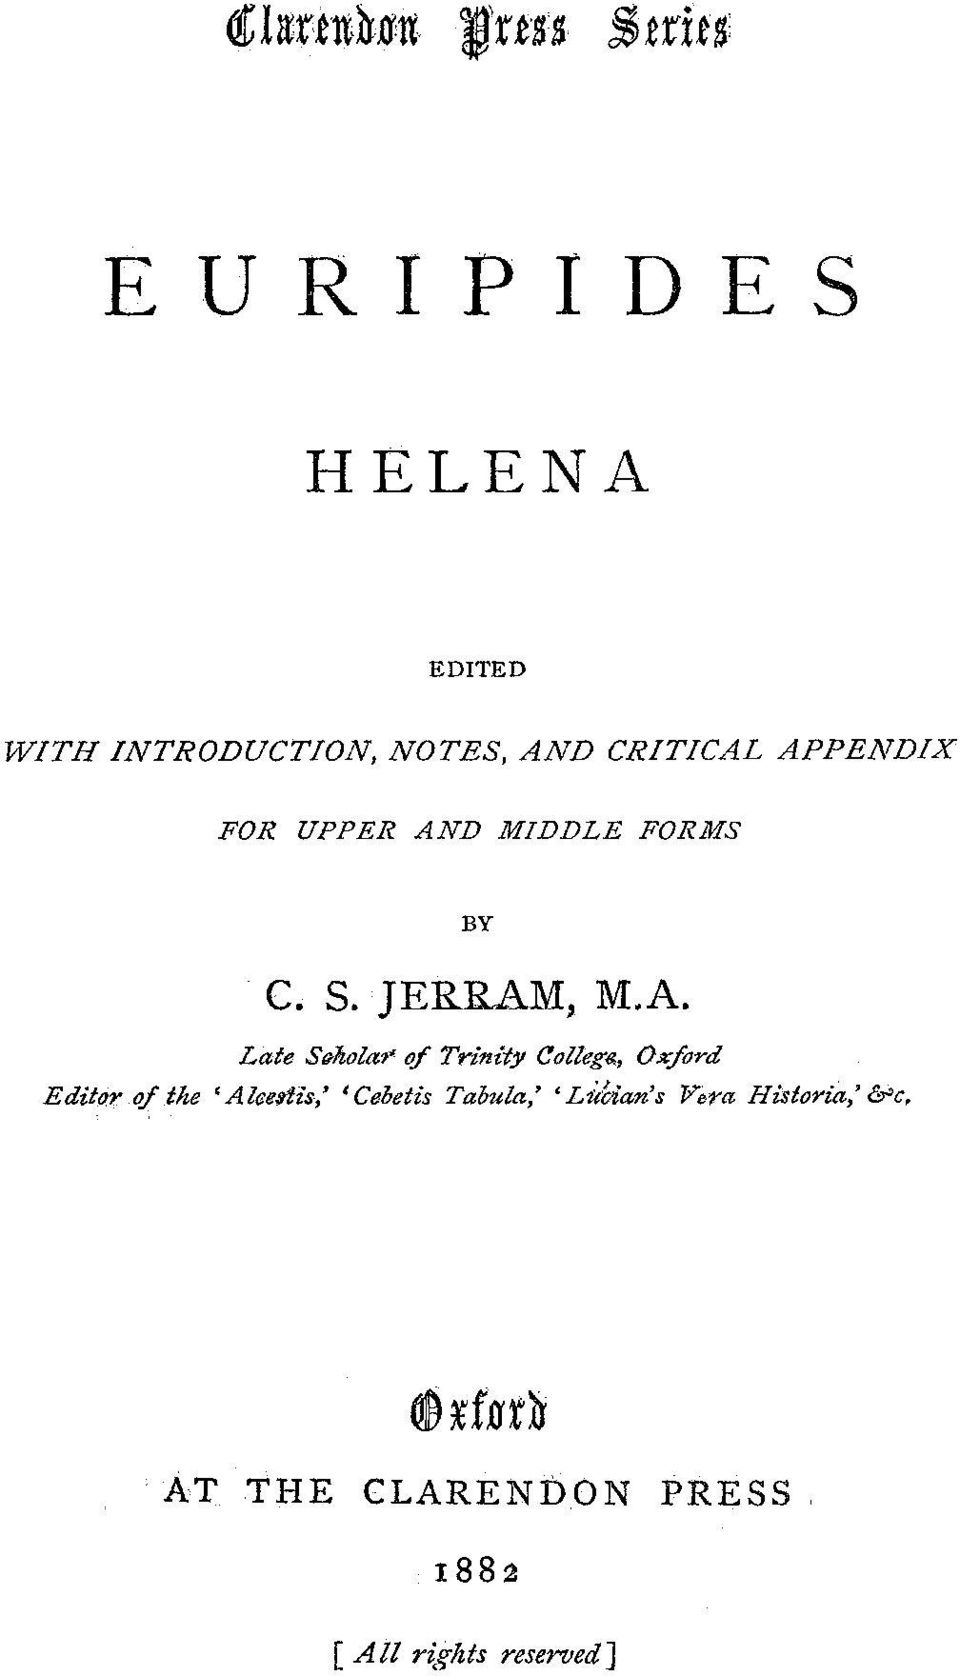 D MIDDLE FORMS BY C. S. JERRAM